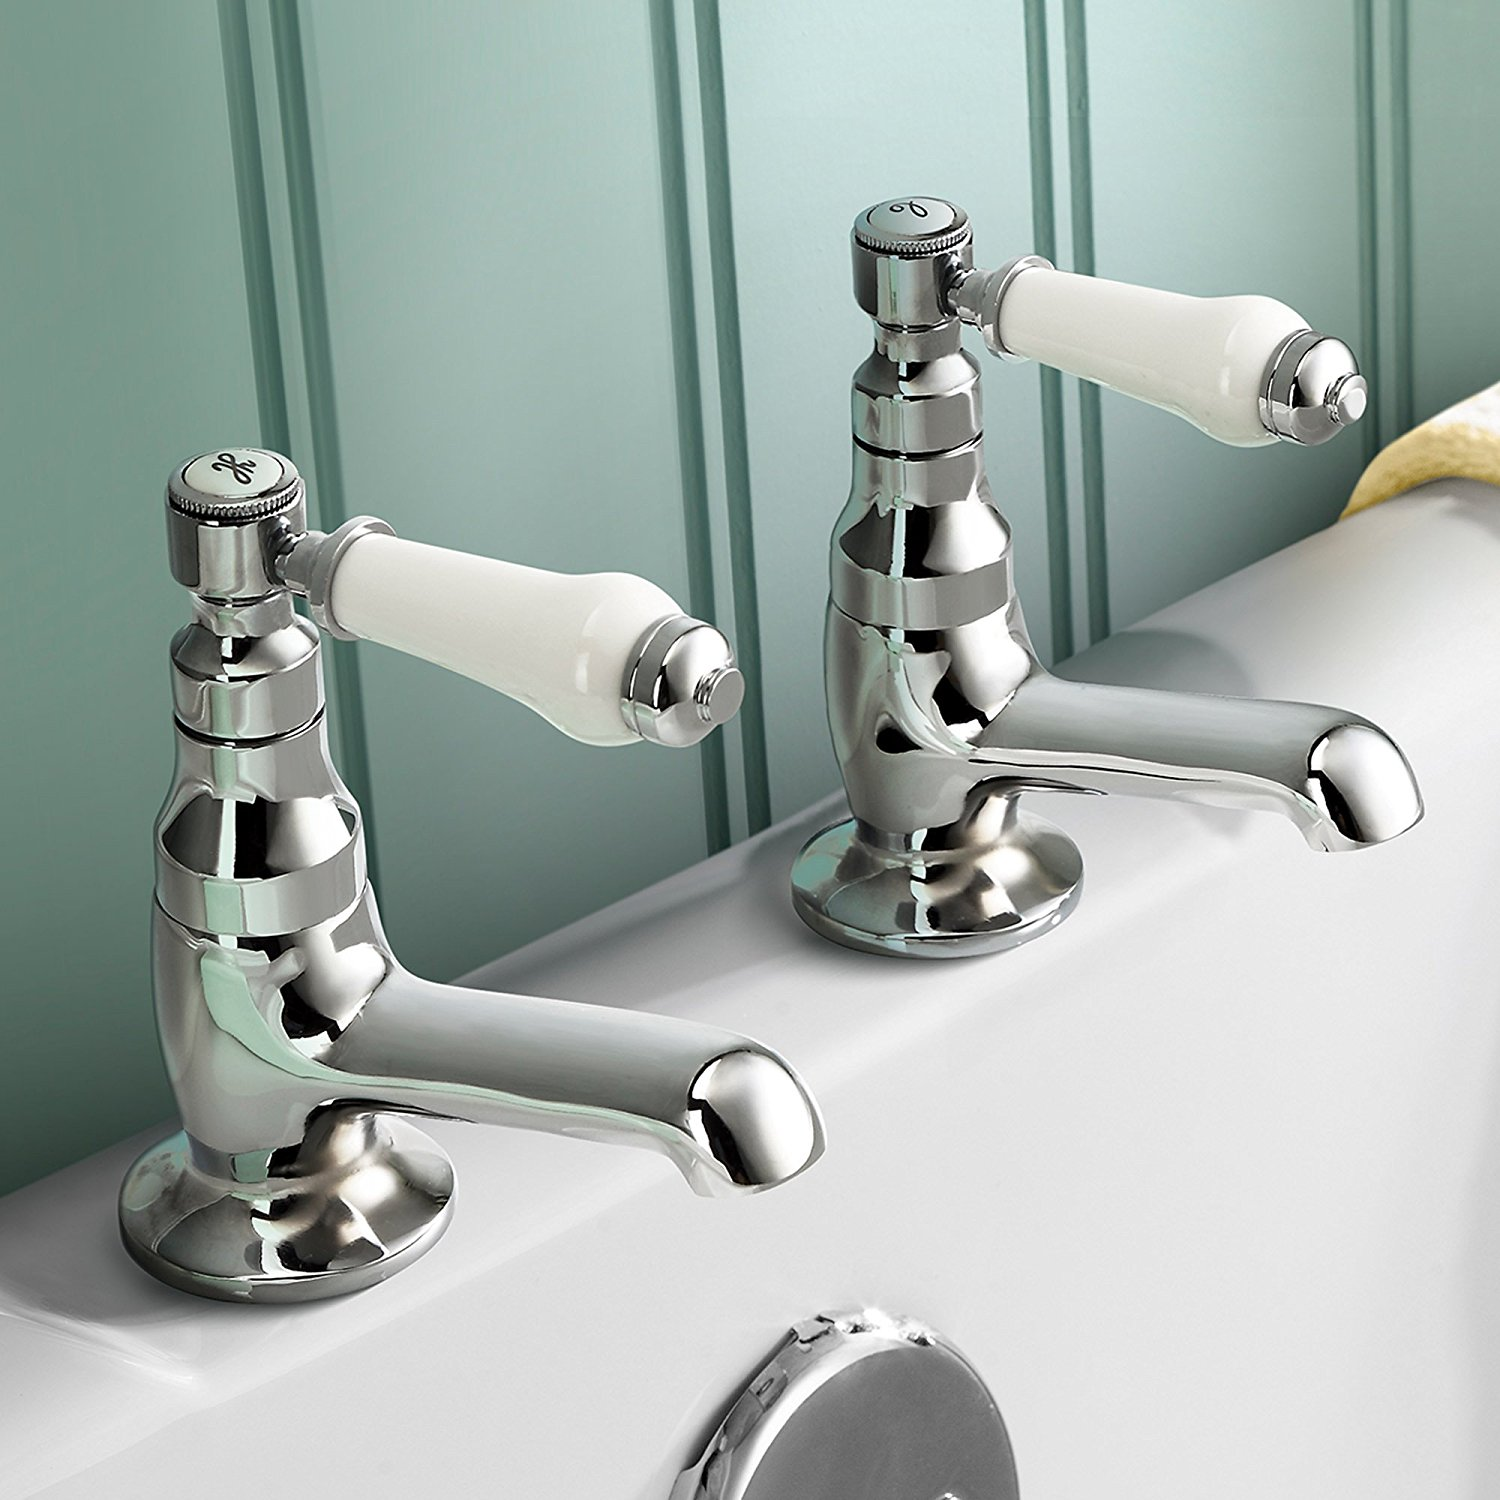 bath taps traditional twin basin sink hot and cold taps pair chrome bathroom faucet RLEFYOM